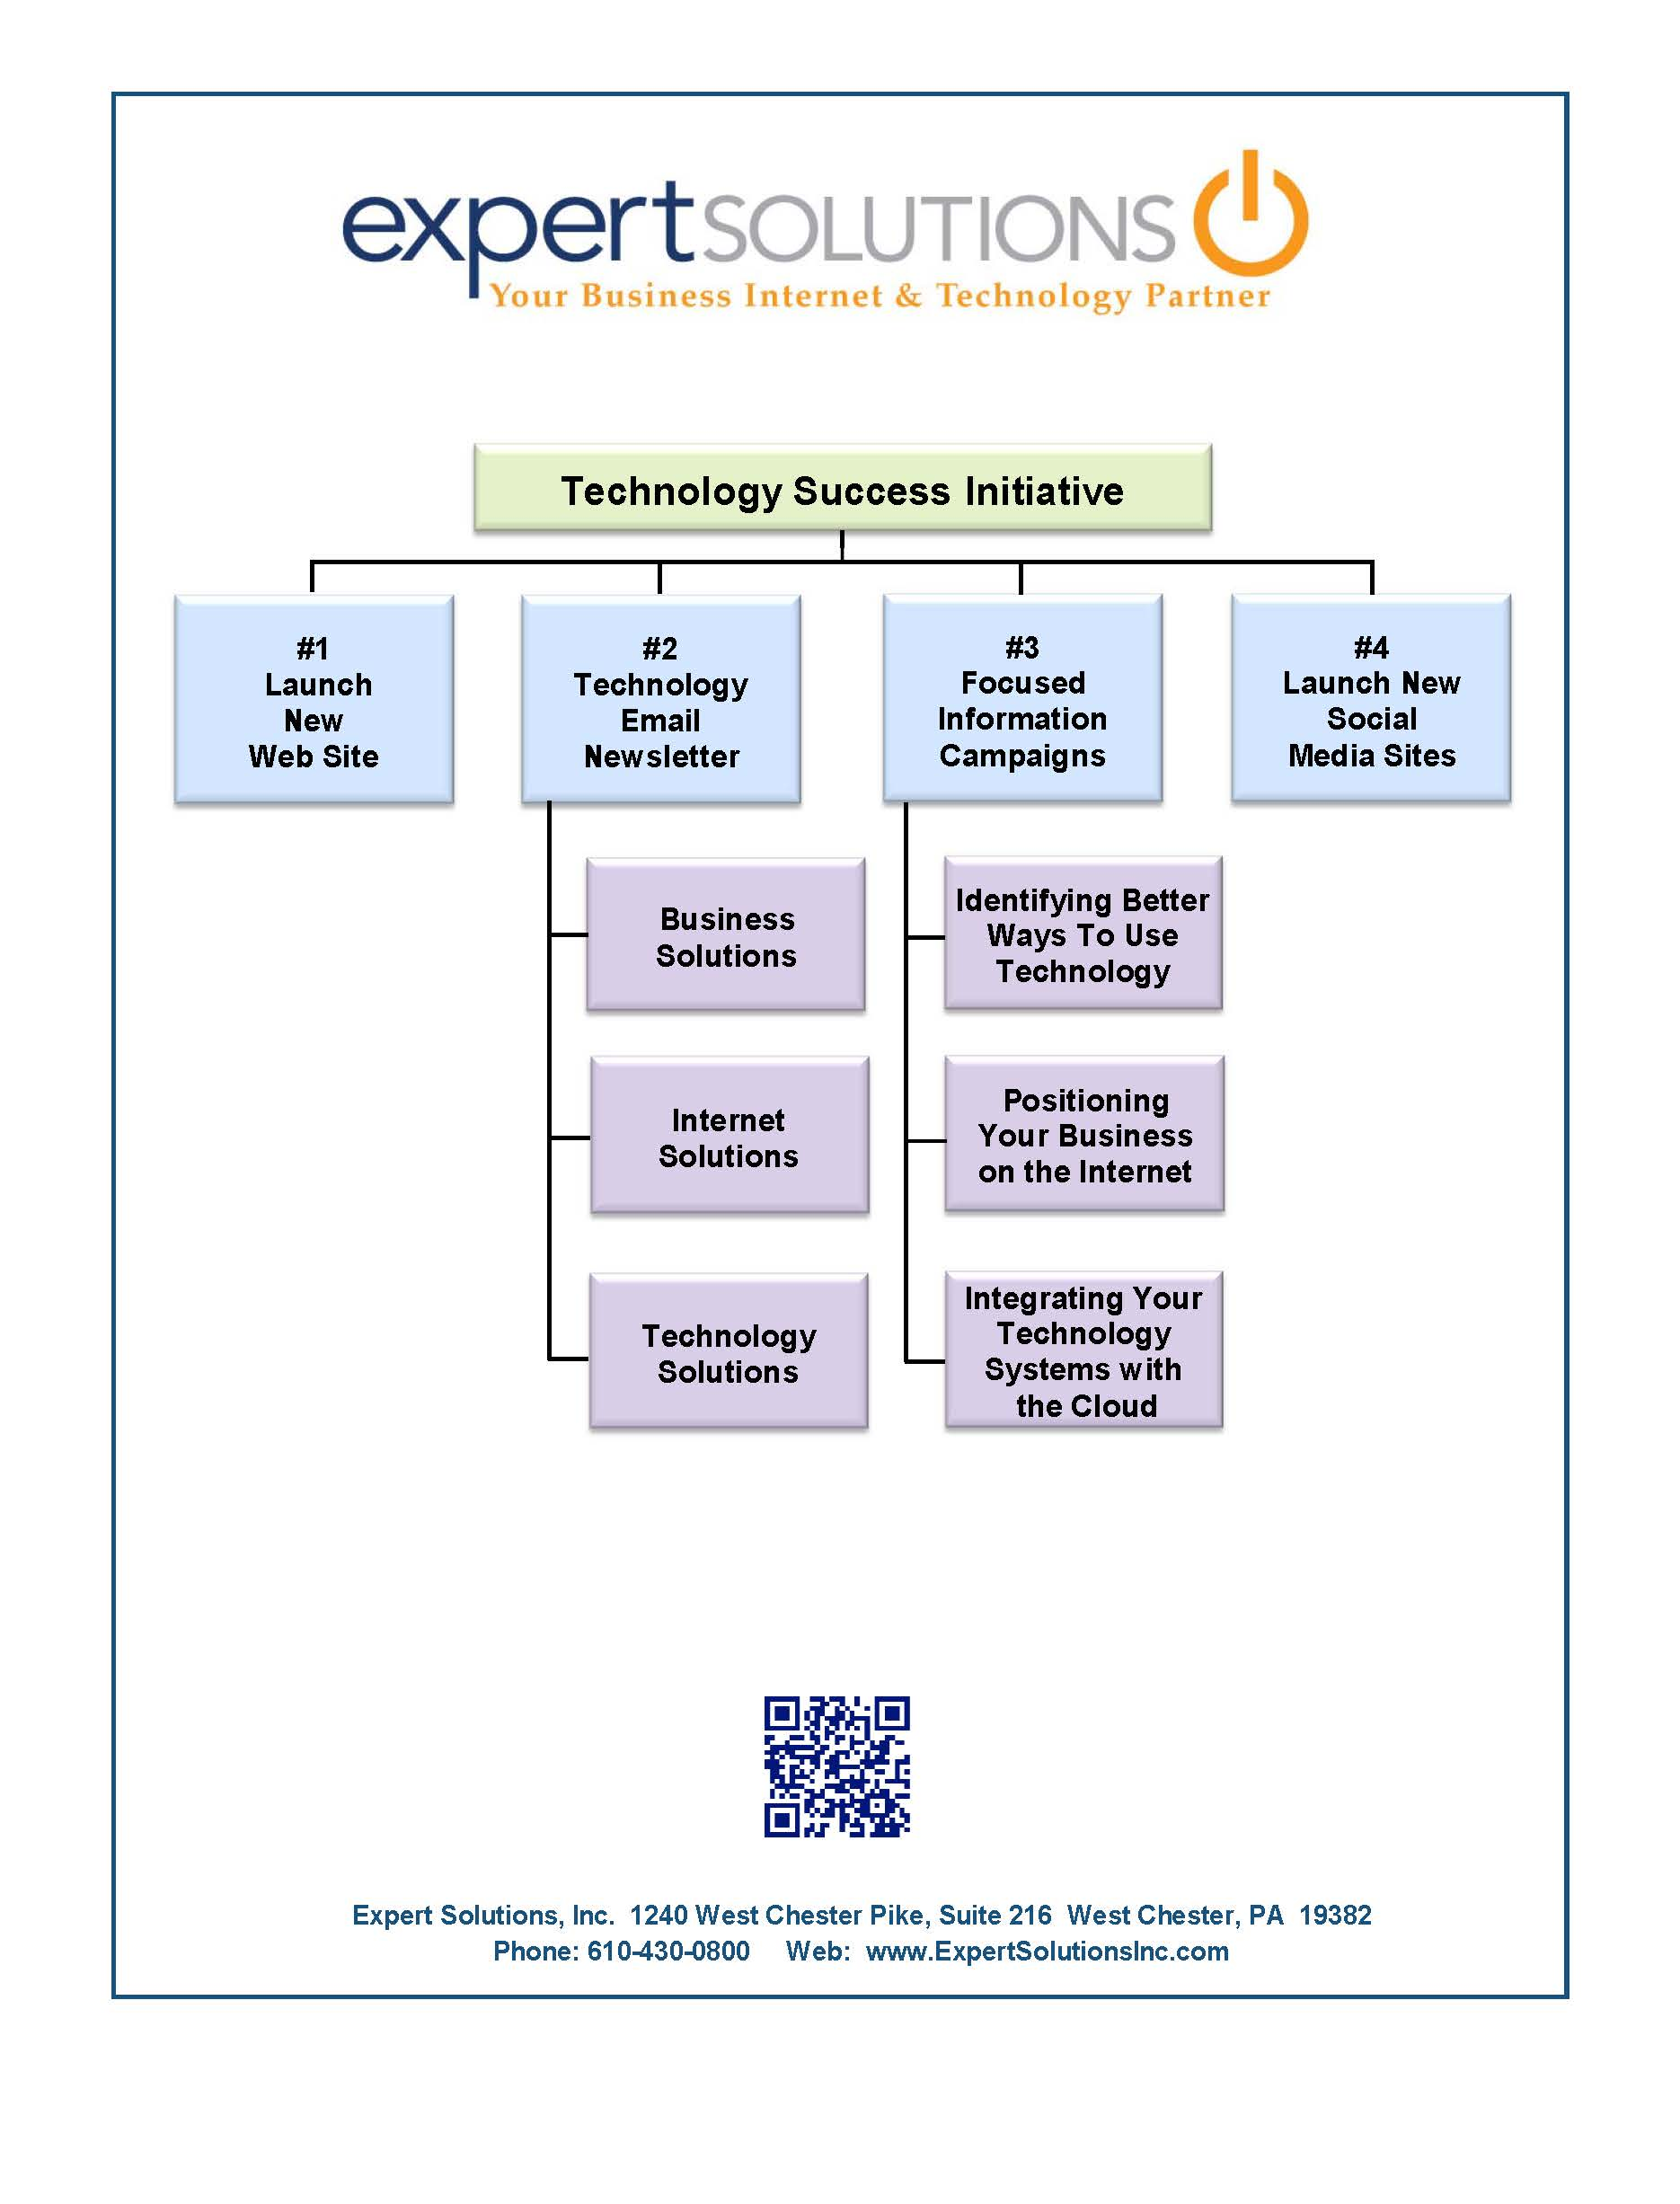 2014 Technology Resources - revised